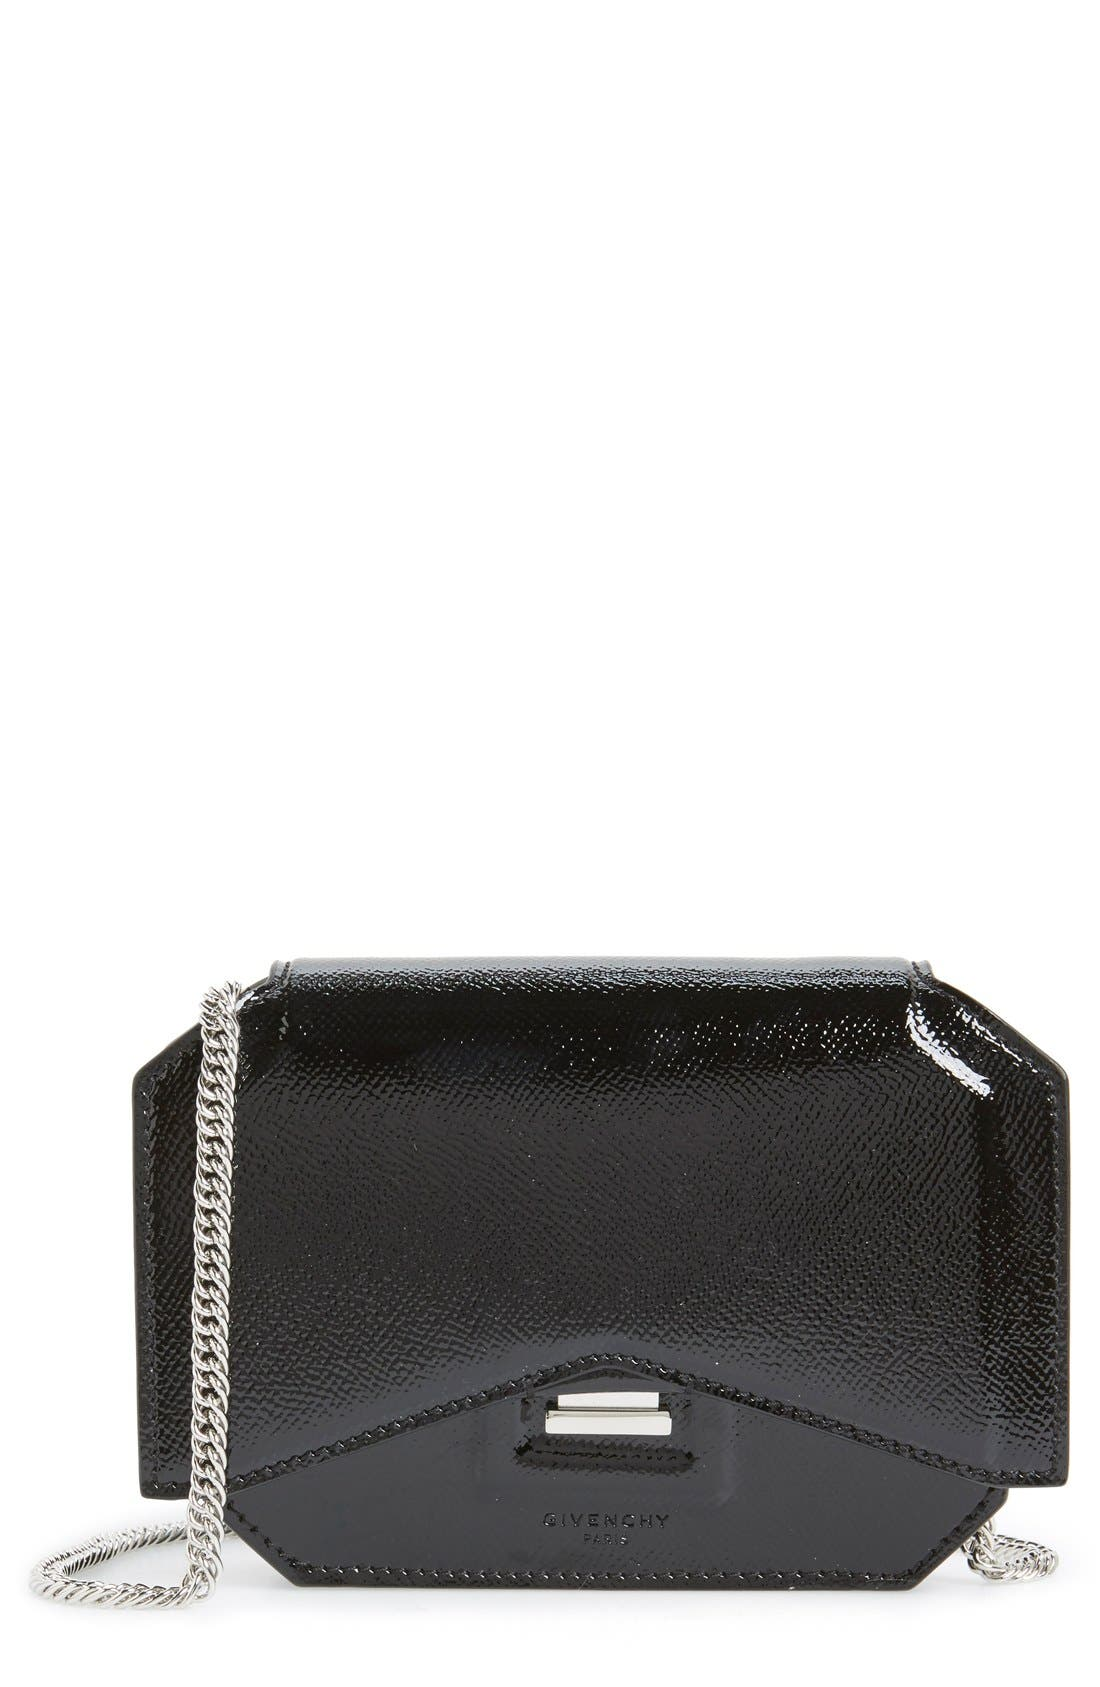 Givenchy 'Bow Cut' Patent Leather Wallet on a Chain